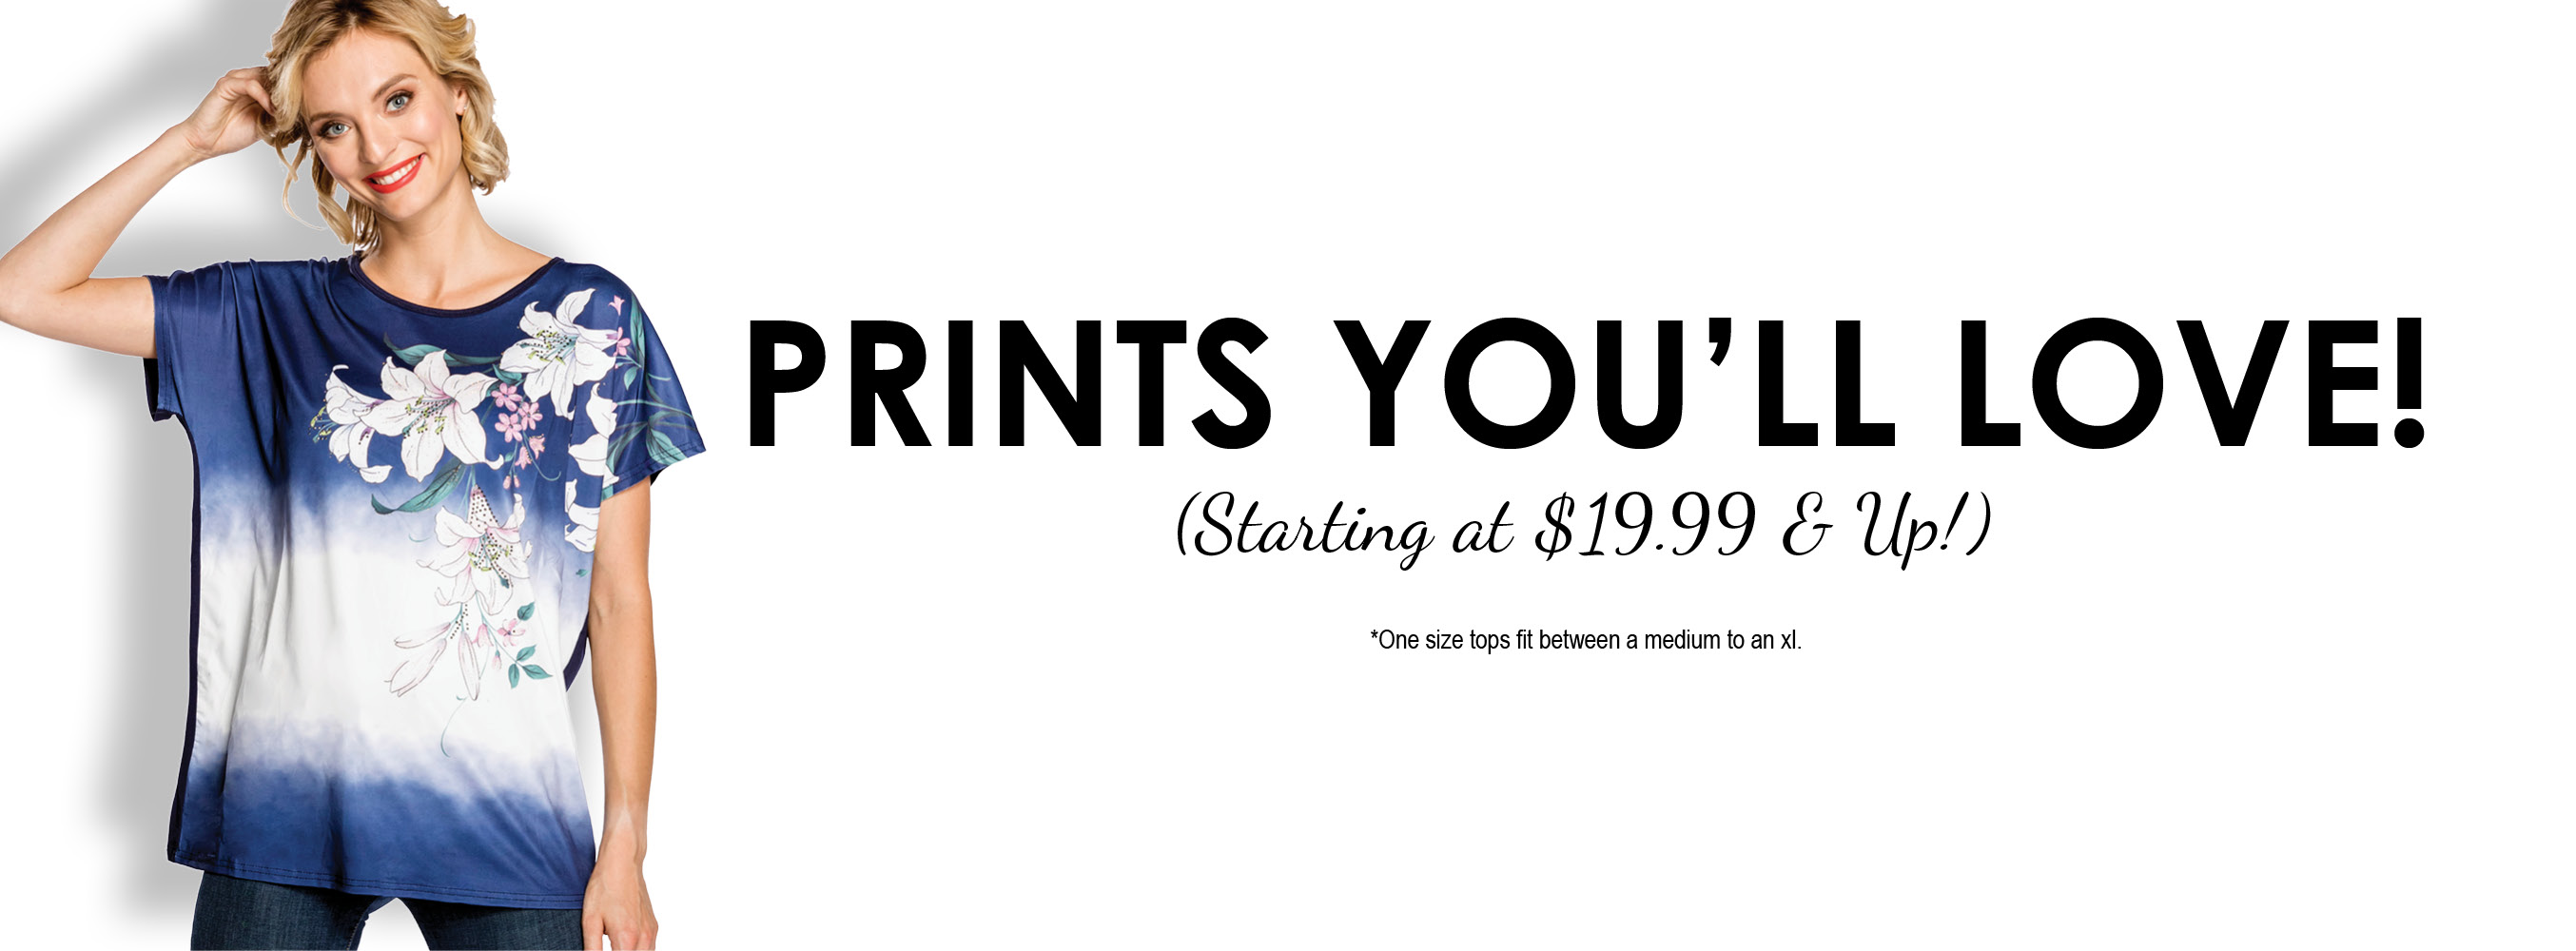 $19.99 & Up Promo Tops | All Sales are Final